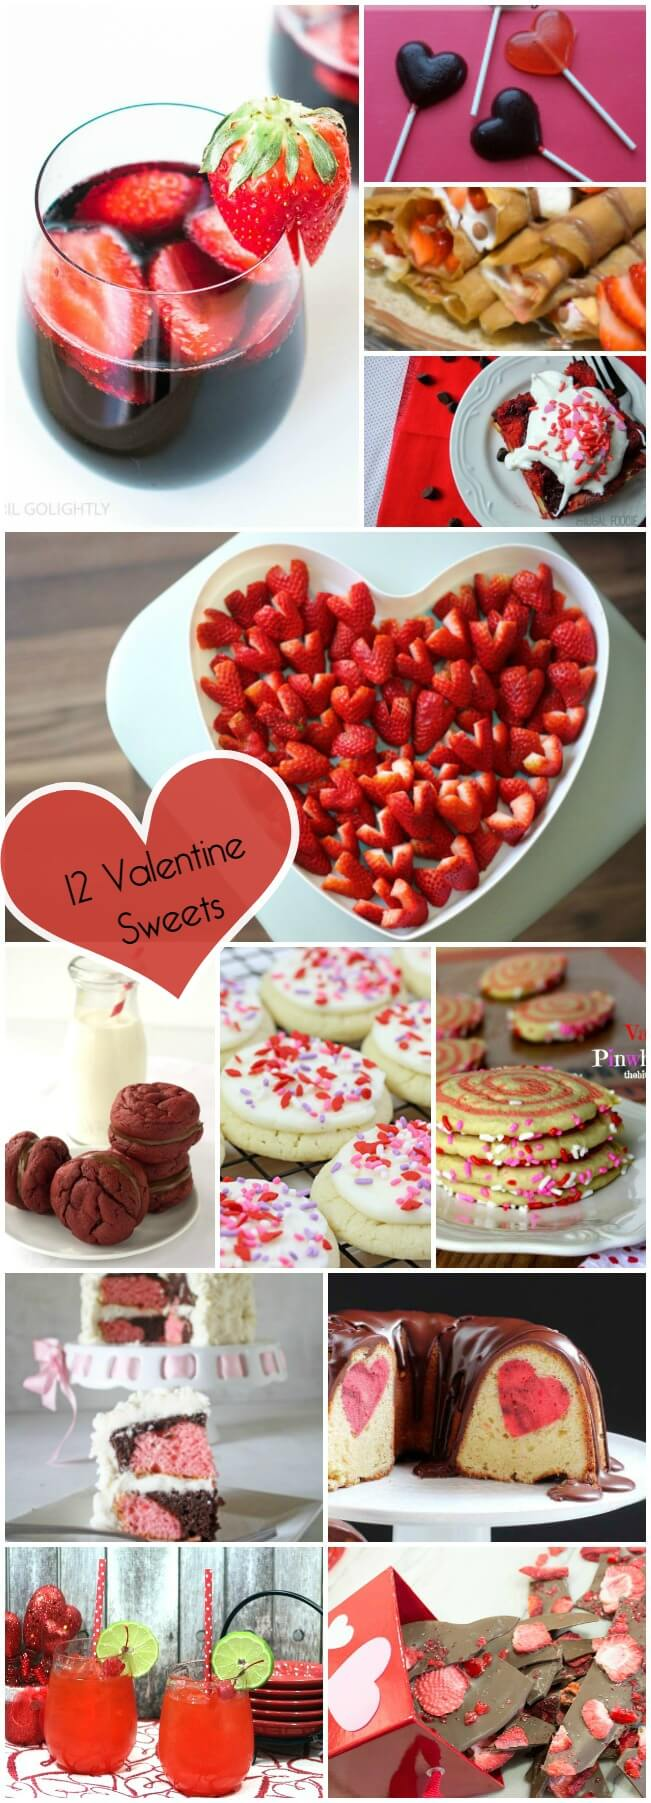 12 Valentine Sweets for your Sweetheart. It's a Valentine Extravaganza!